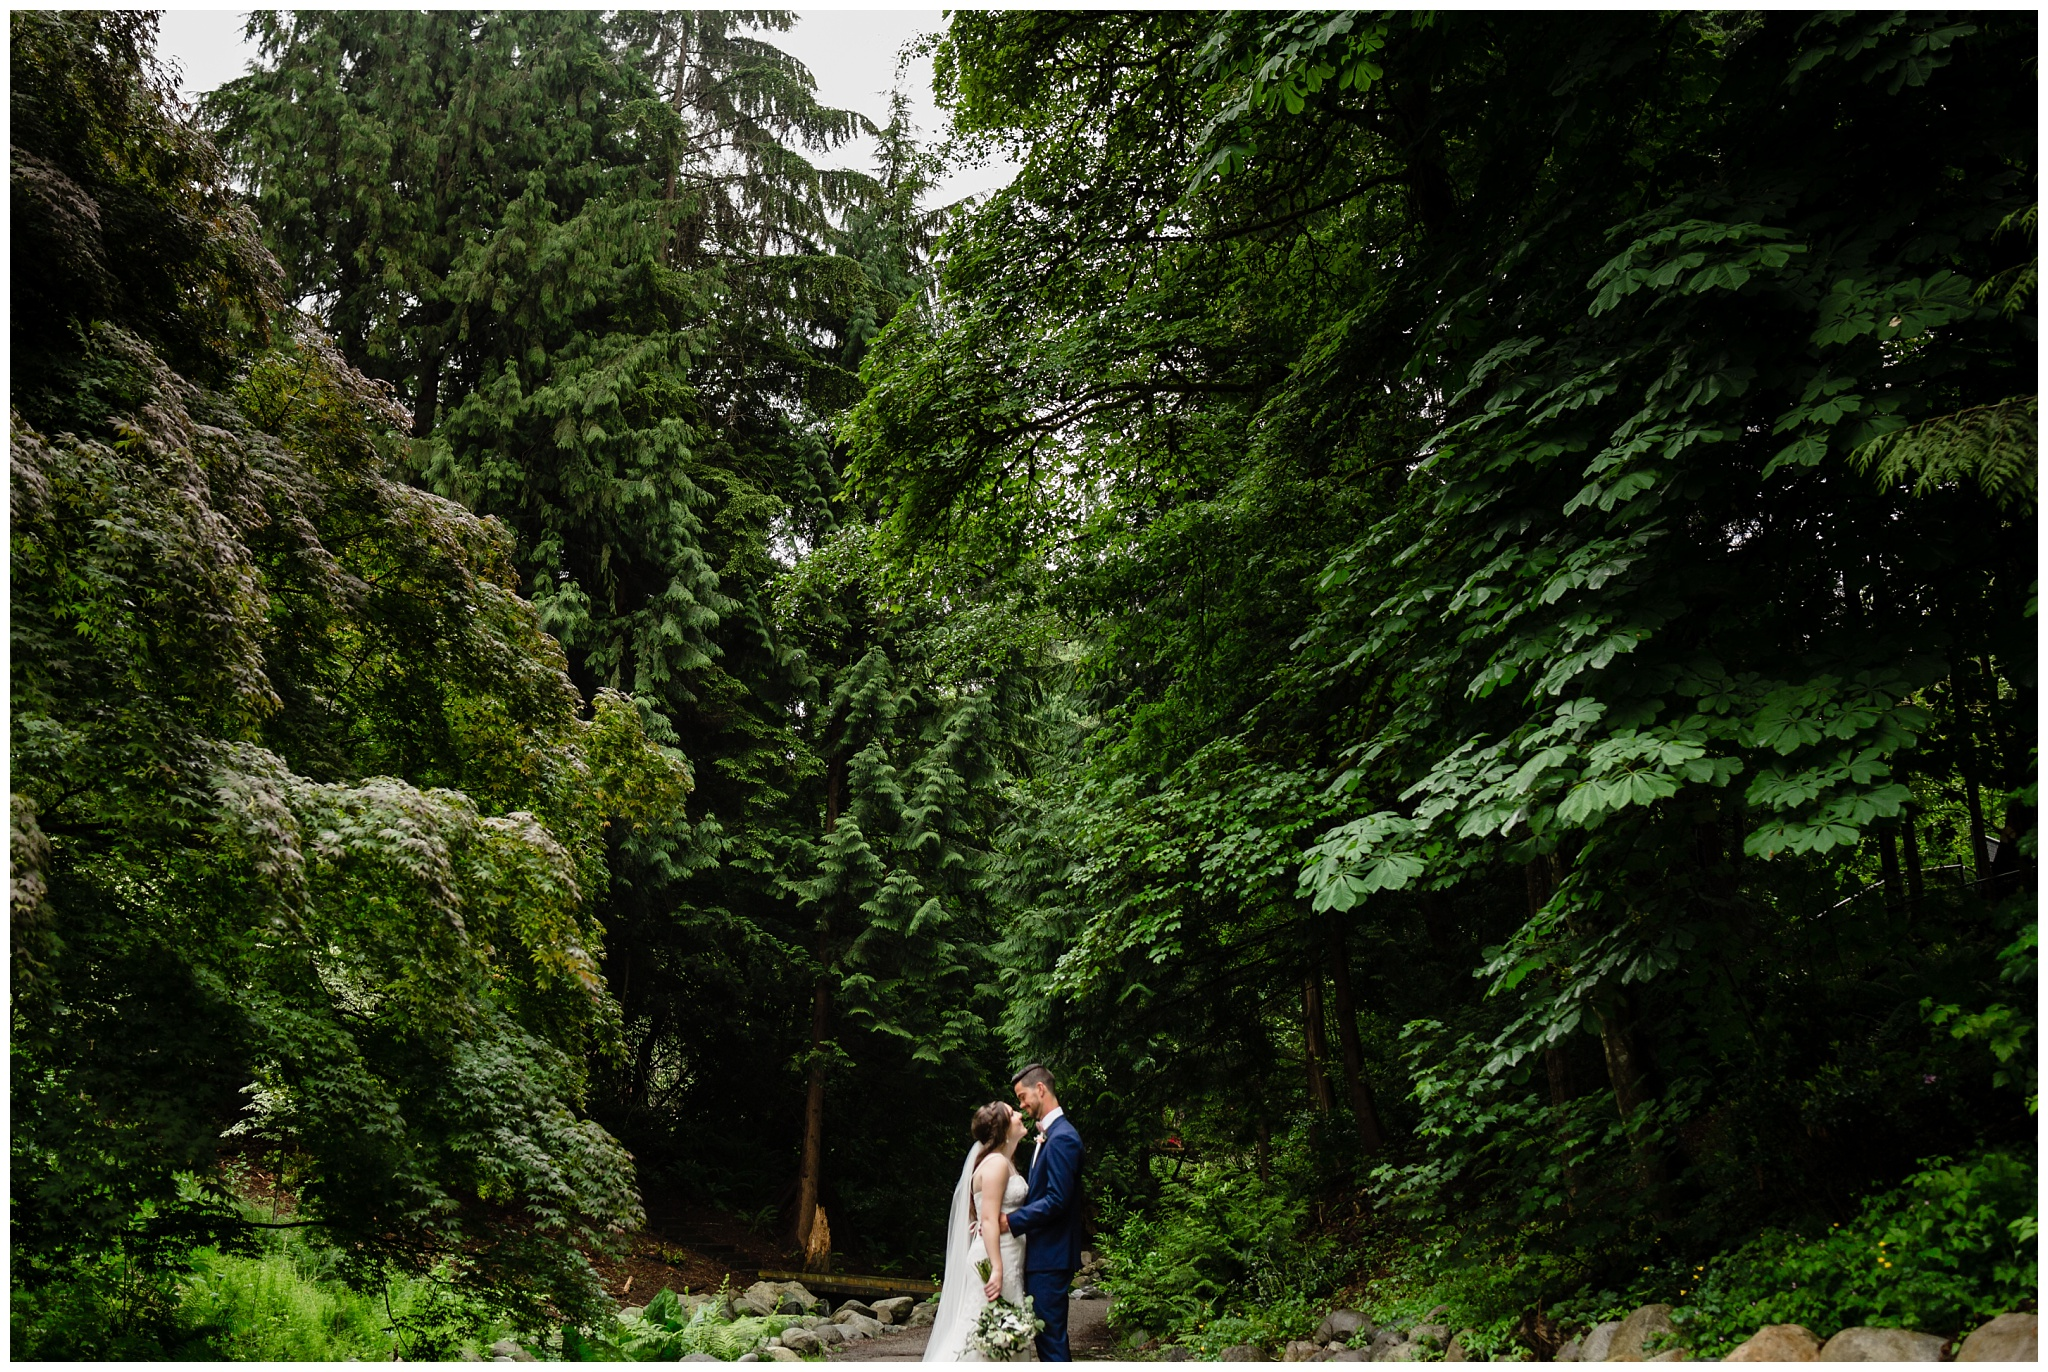 Cloverdale Canadian Reformed Church Wedding Sendall Garden Bride Groom Portraits Christian Couples Best Photographer in Langley Surrey British Columbia_0043.jpg